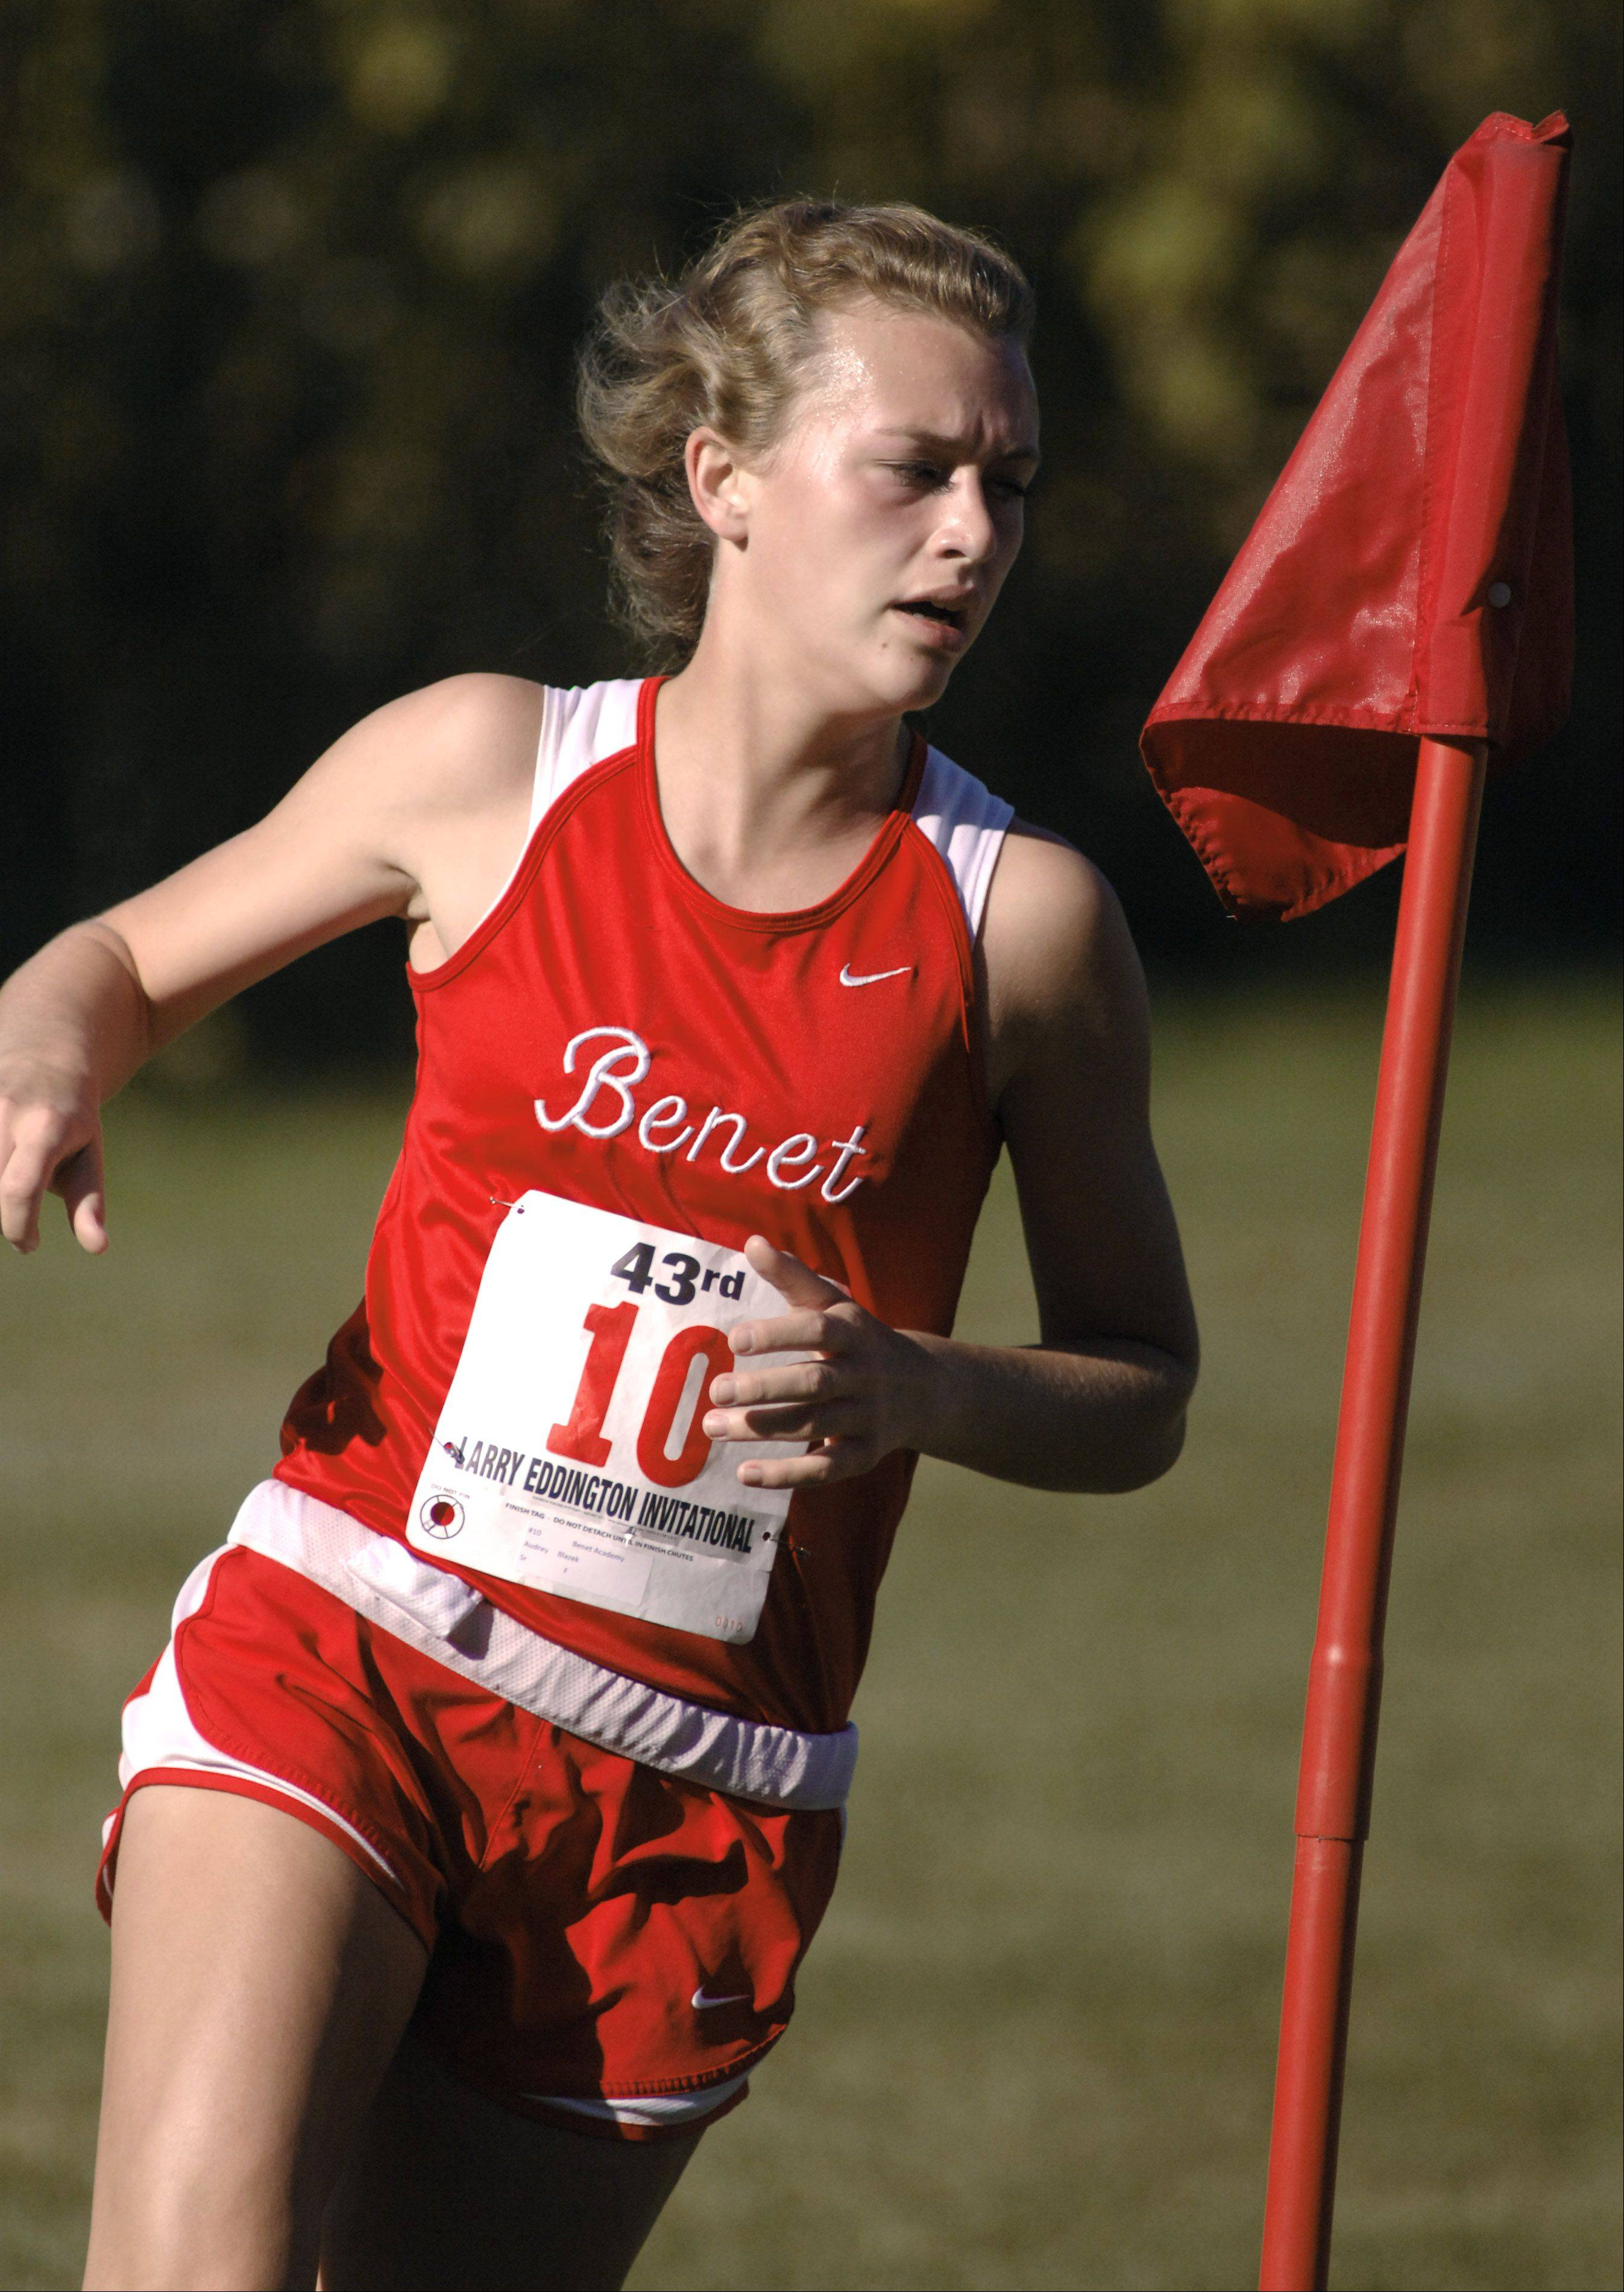 Benet's Audrey Blazek at the Kaneland Eddington Invitational in Elburn on Saturday, September 15.